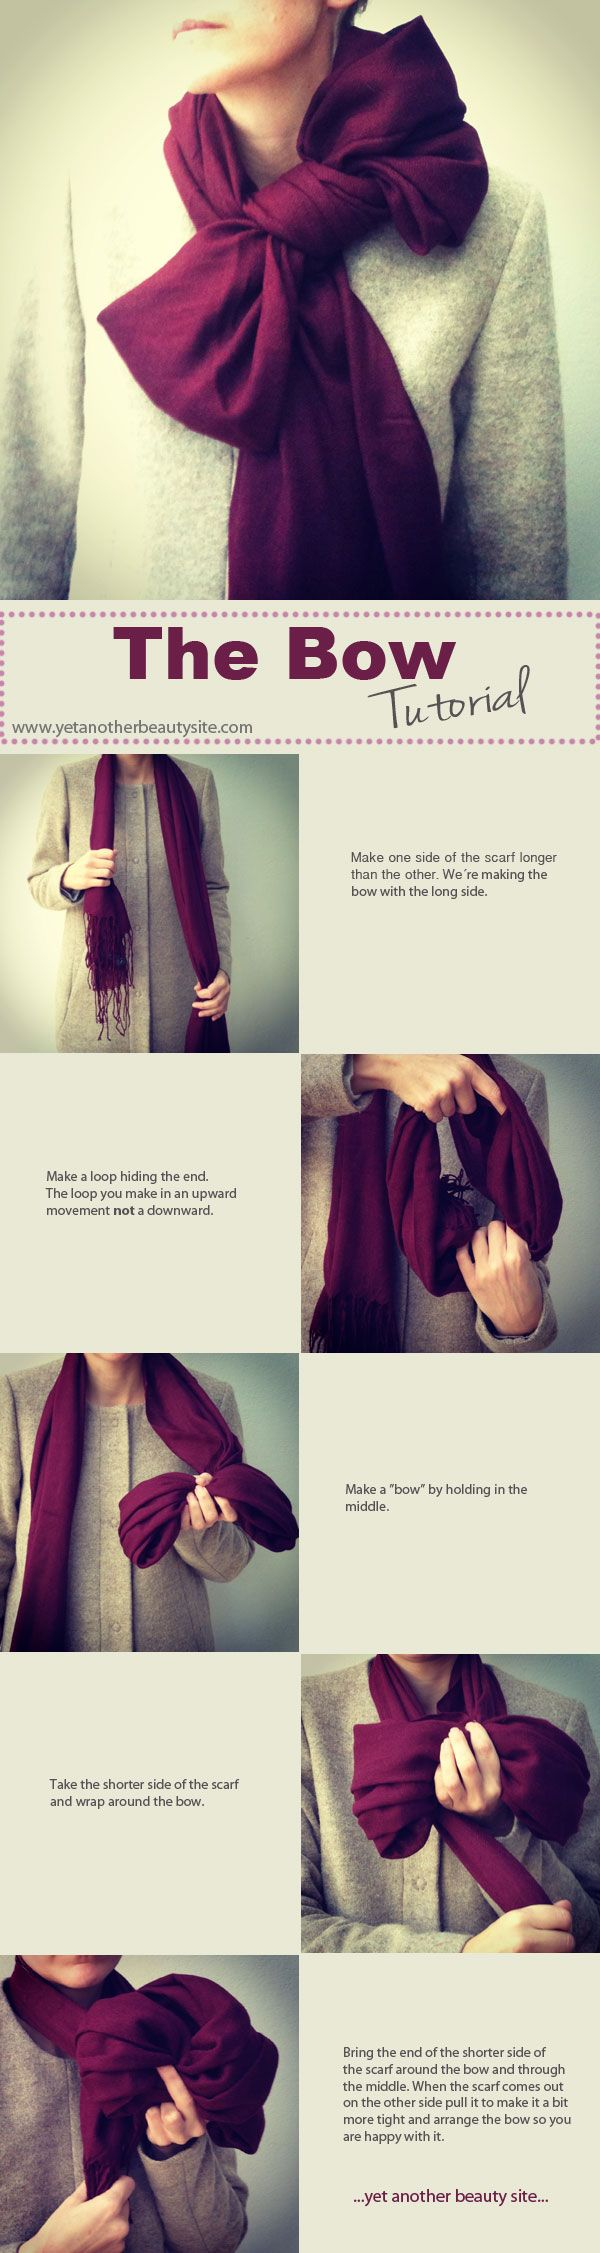 Now scarf